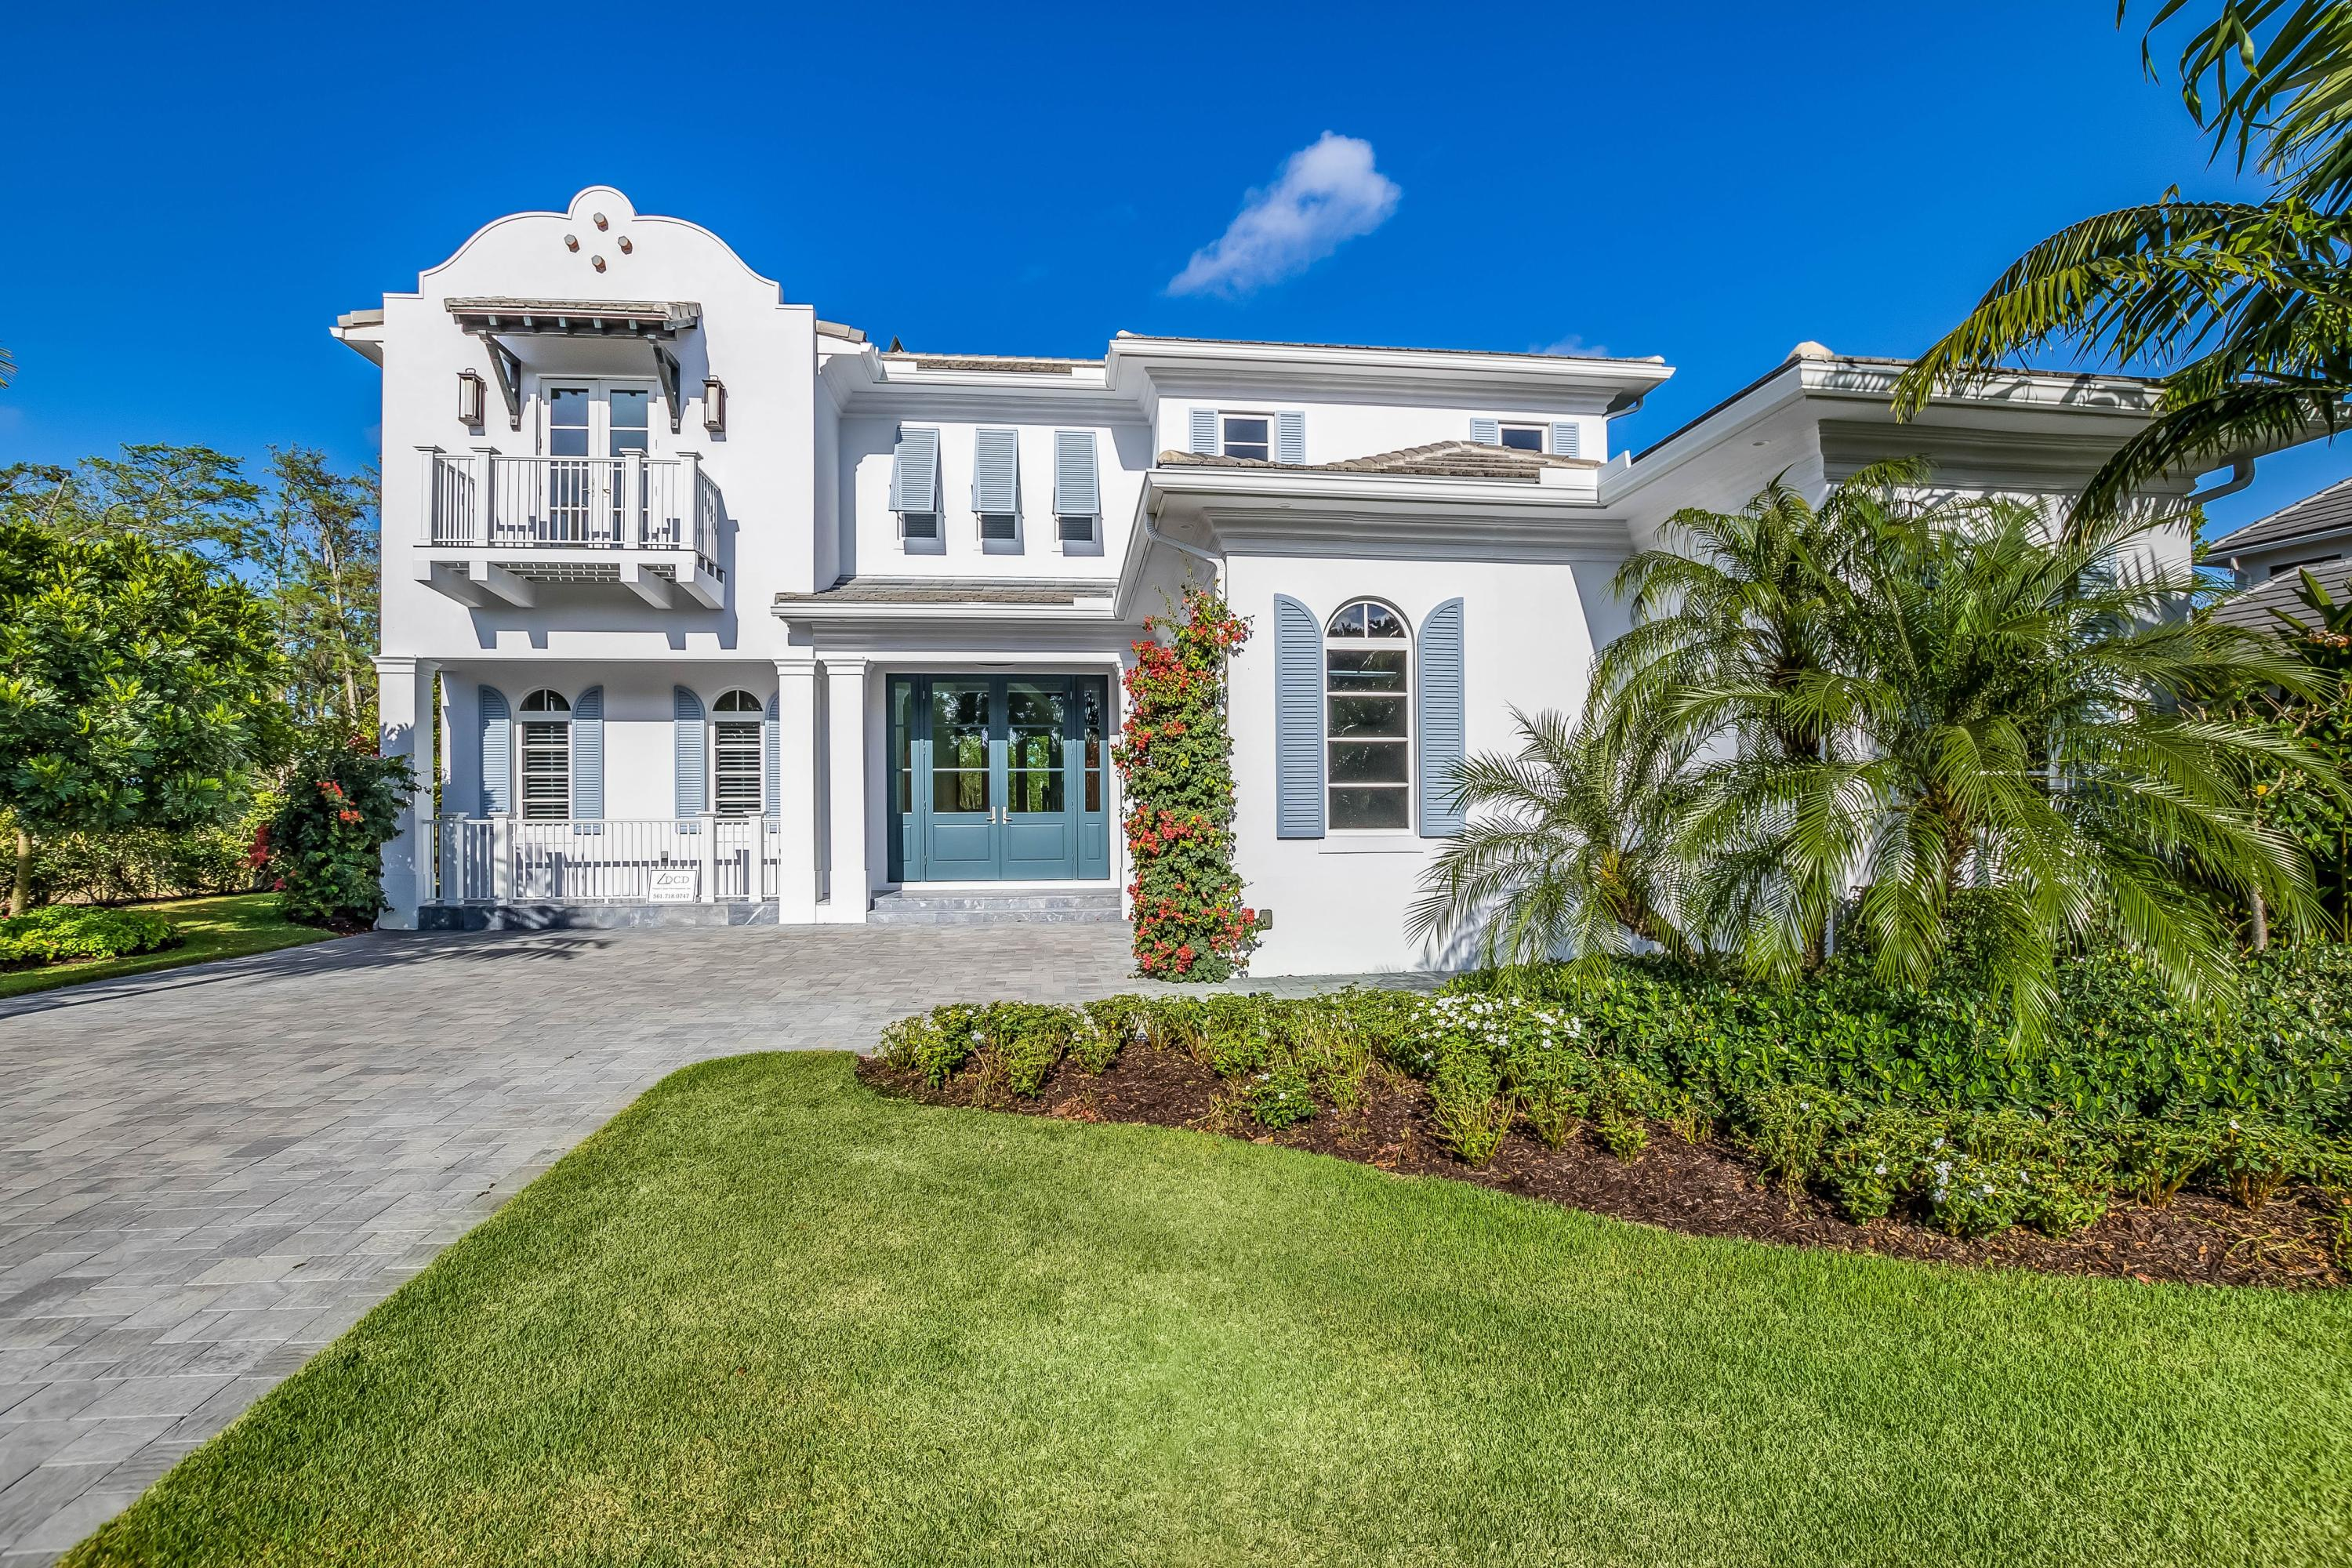 2759 Blue Cypress Lane, Wellington, Florida 33414, 4 Bedrooms Bedrooms, ,4.1 BathroomsBathrooms,Single Family,For Sale,Palm Beach Polo Golf and Country Club,Blue Cypress,RX-10477875